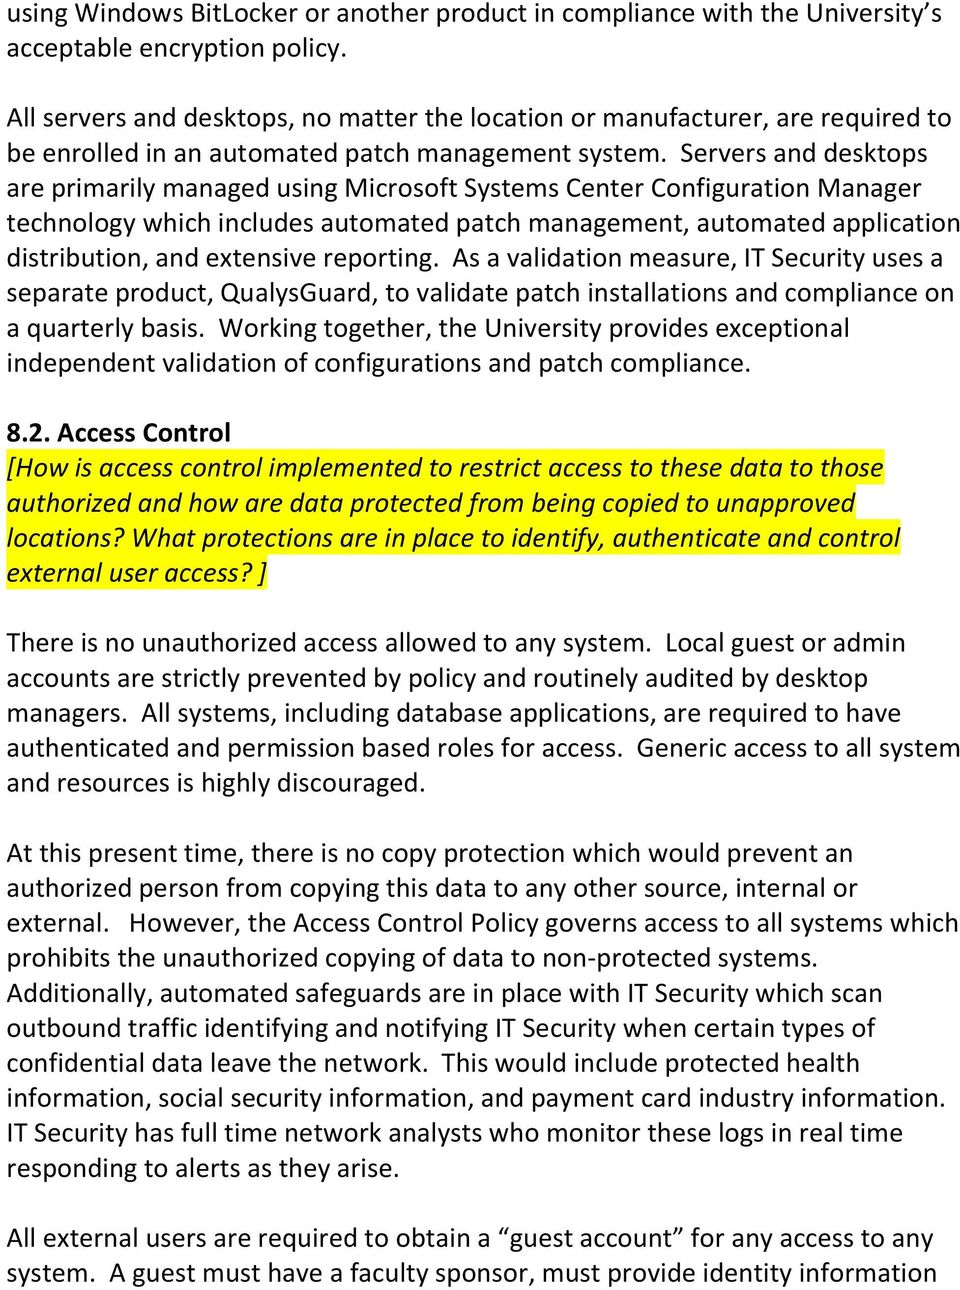 Servers and desktops are primarily managed using Microsoft Systems Center Configuration Manager technology which includes automated patch management, automated application distribution, and extensive